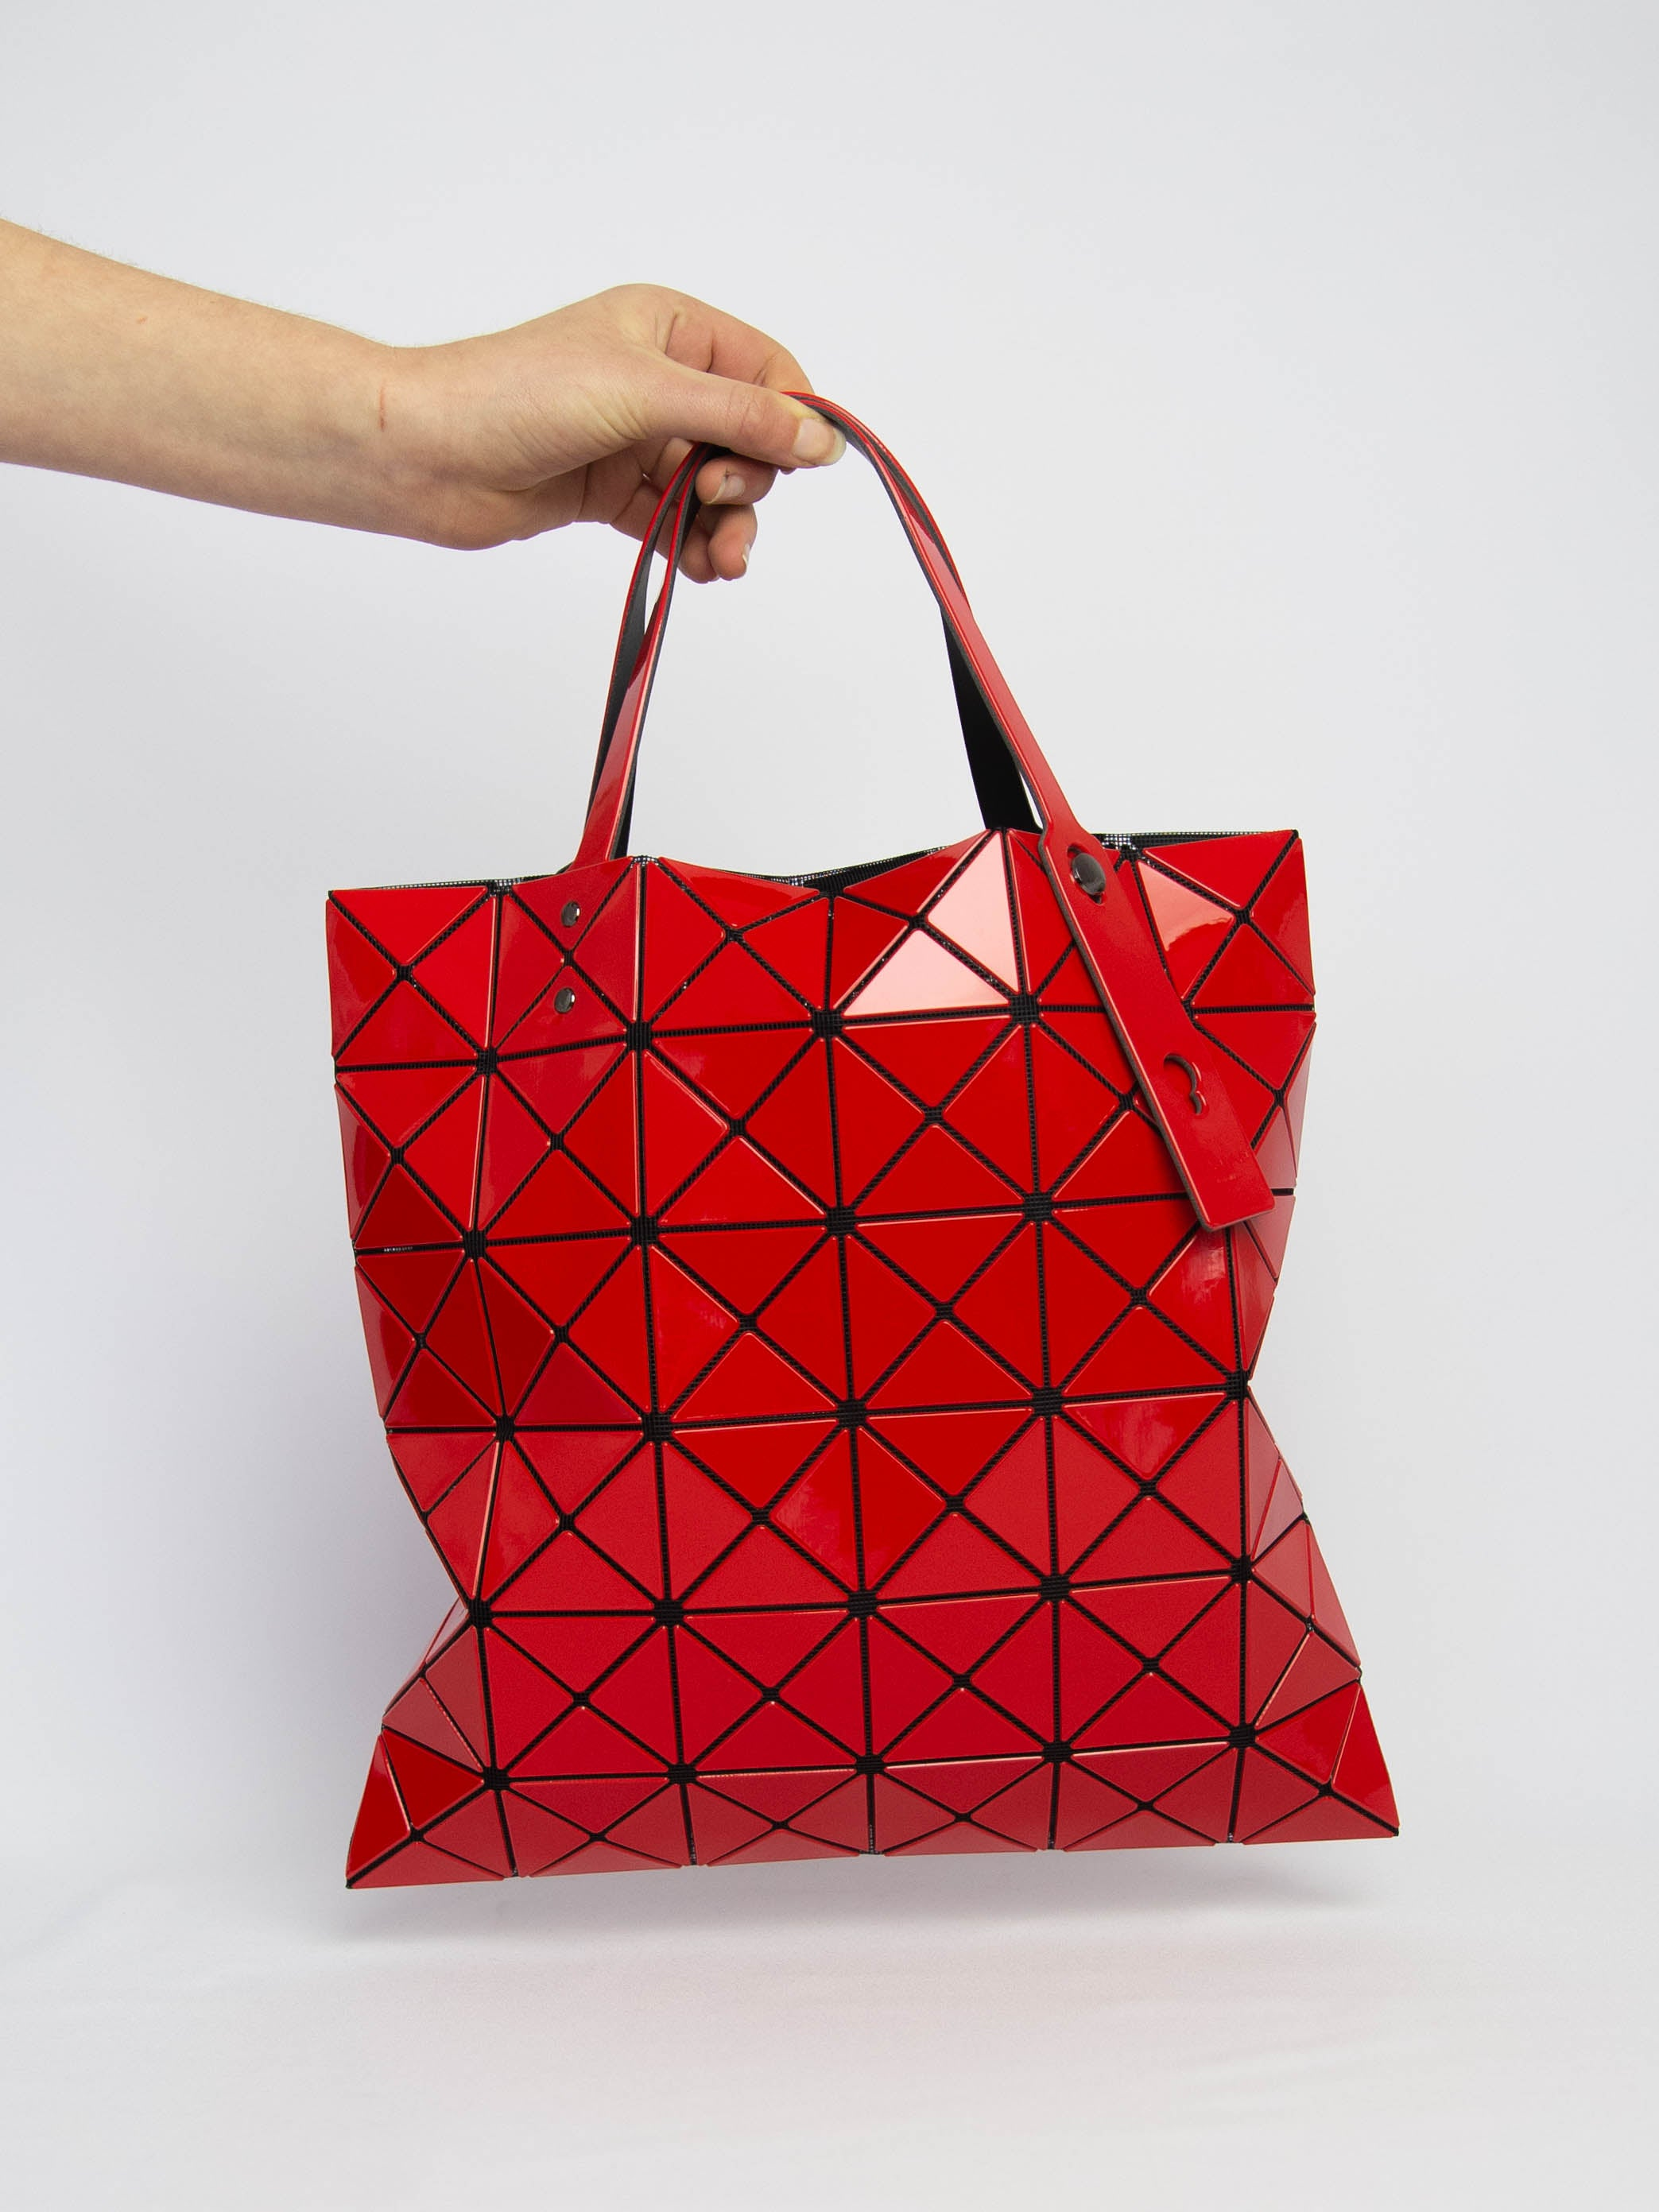 Lucent Gloss Tote Bag - Red